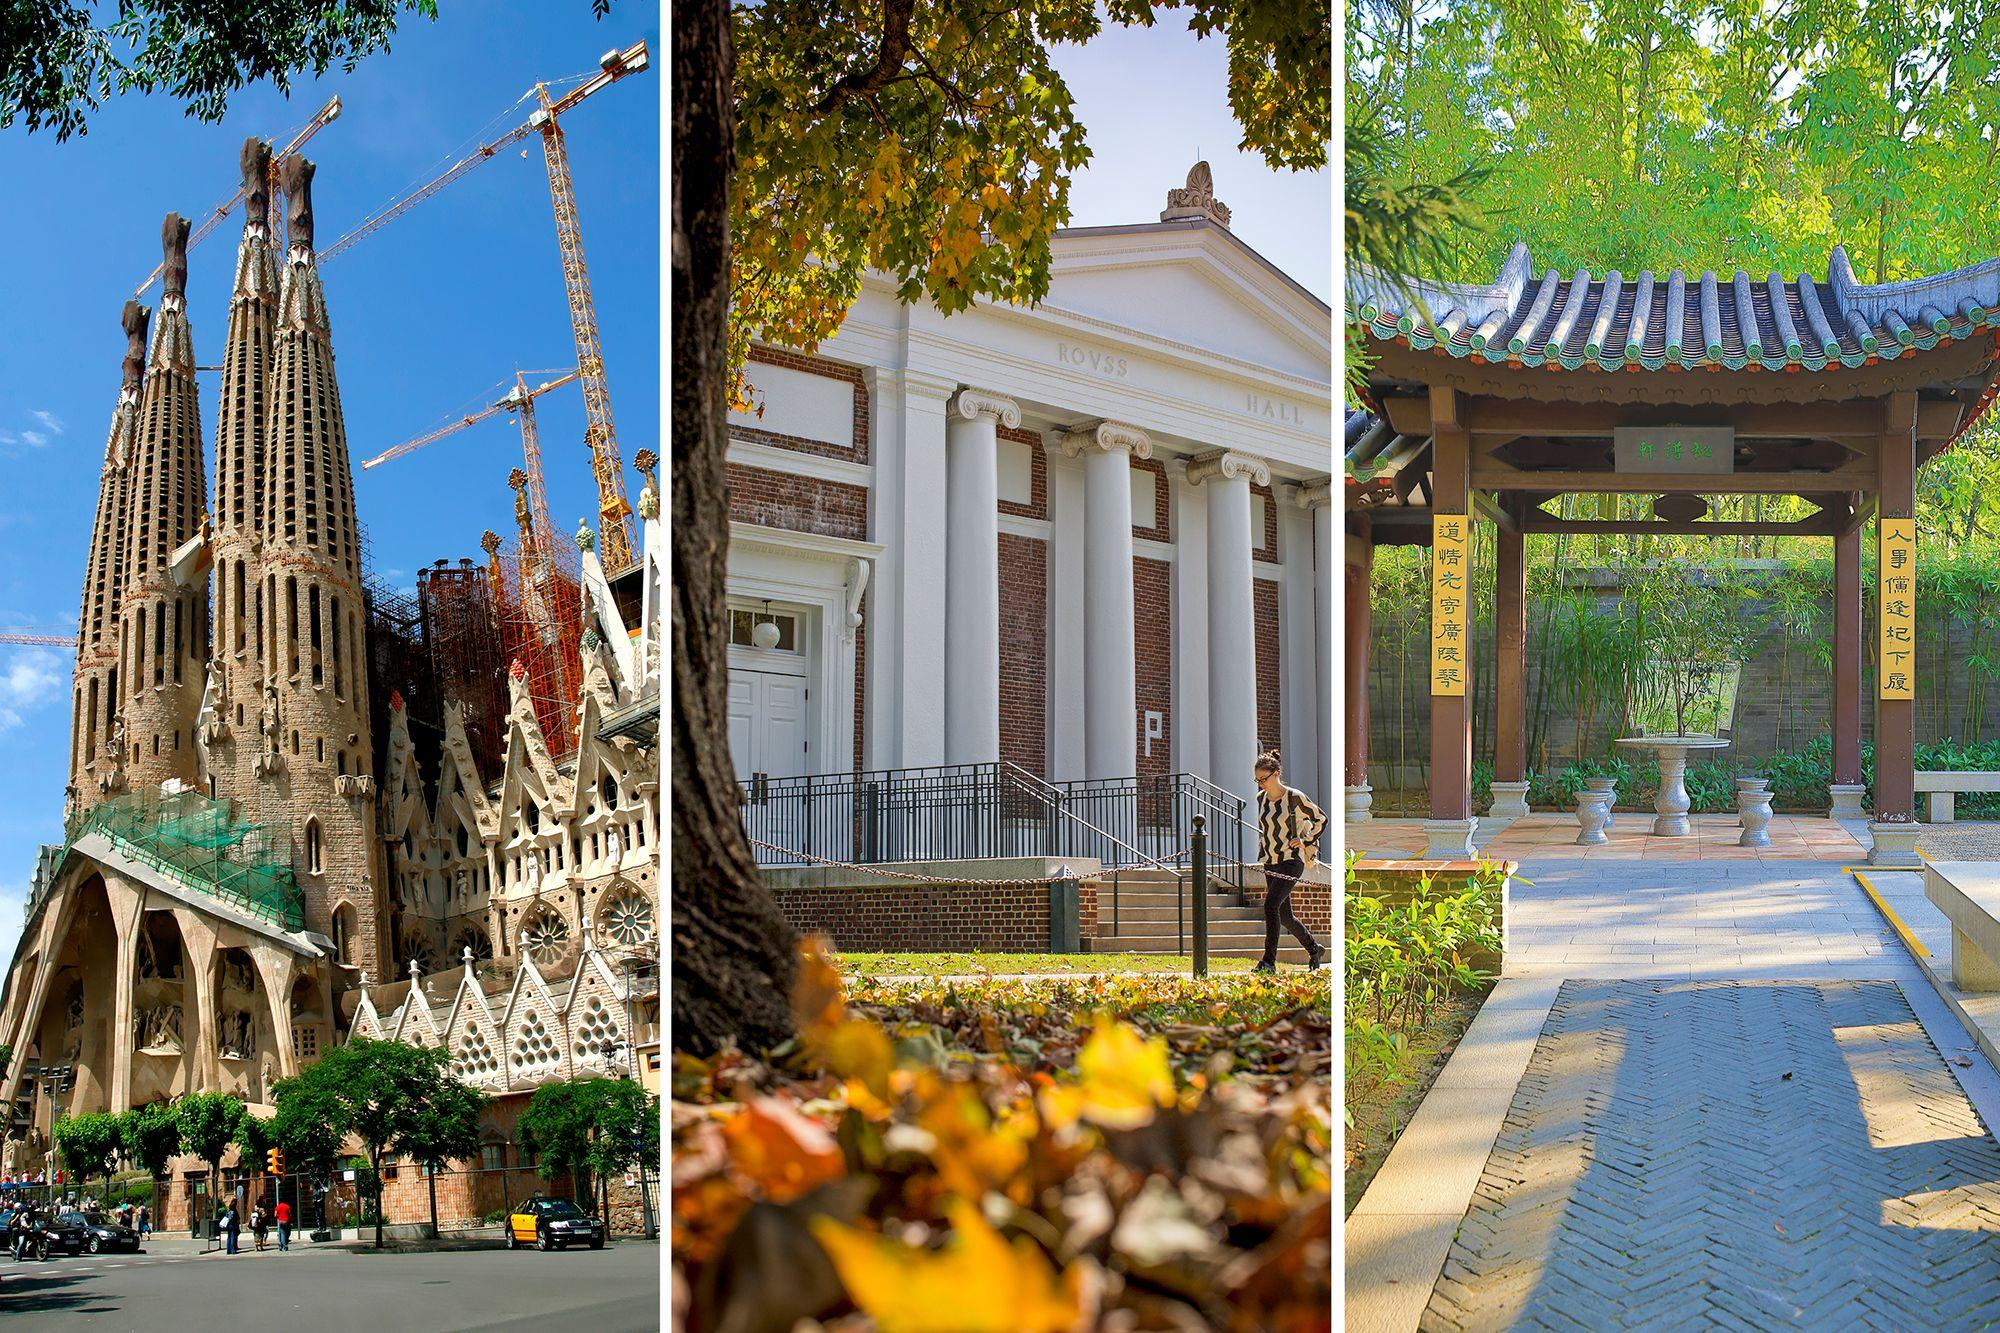 Students in the program will study at UVA, as well as ESADE Business School in Barcelona, Spain, and Lingnan (University) College at Sun Yat-sen University in Guangzhou, China.